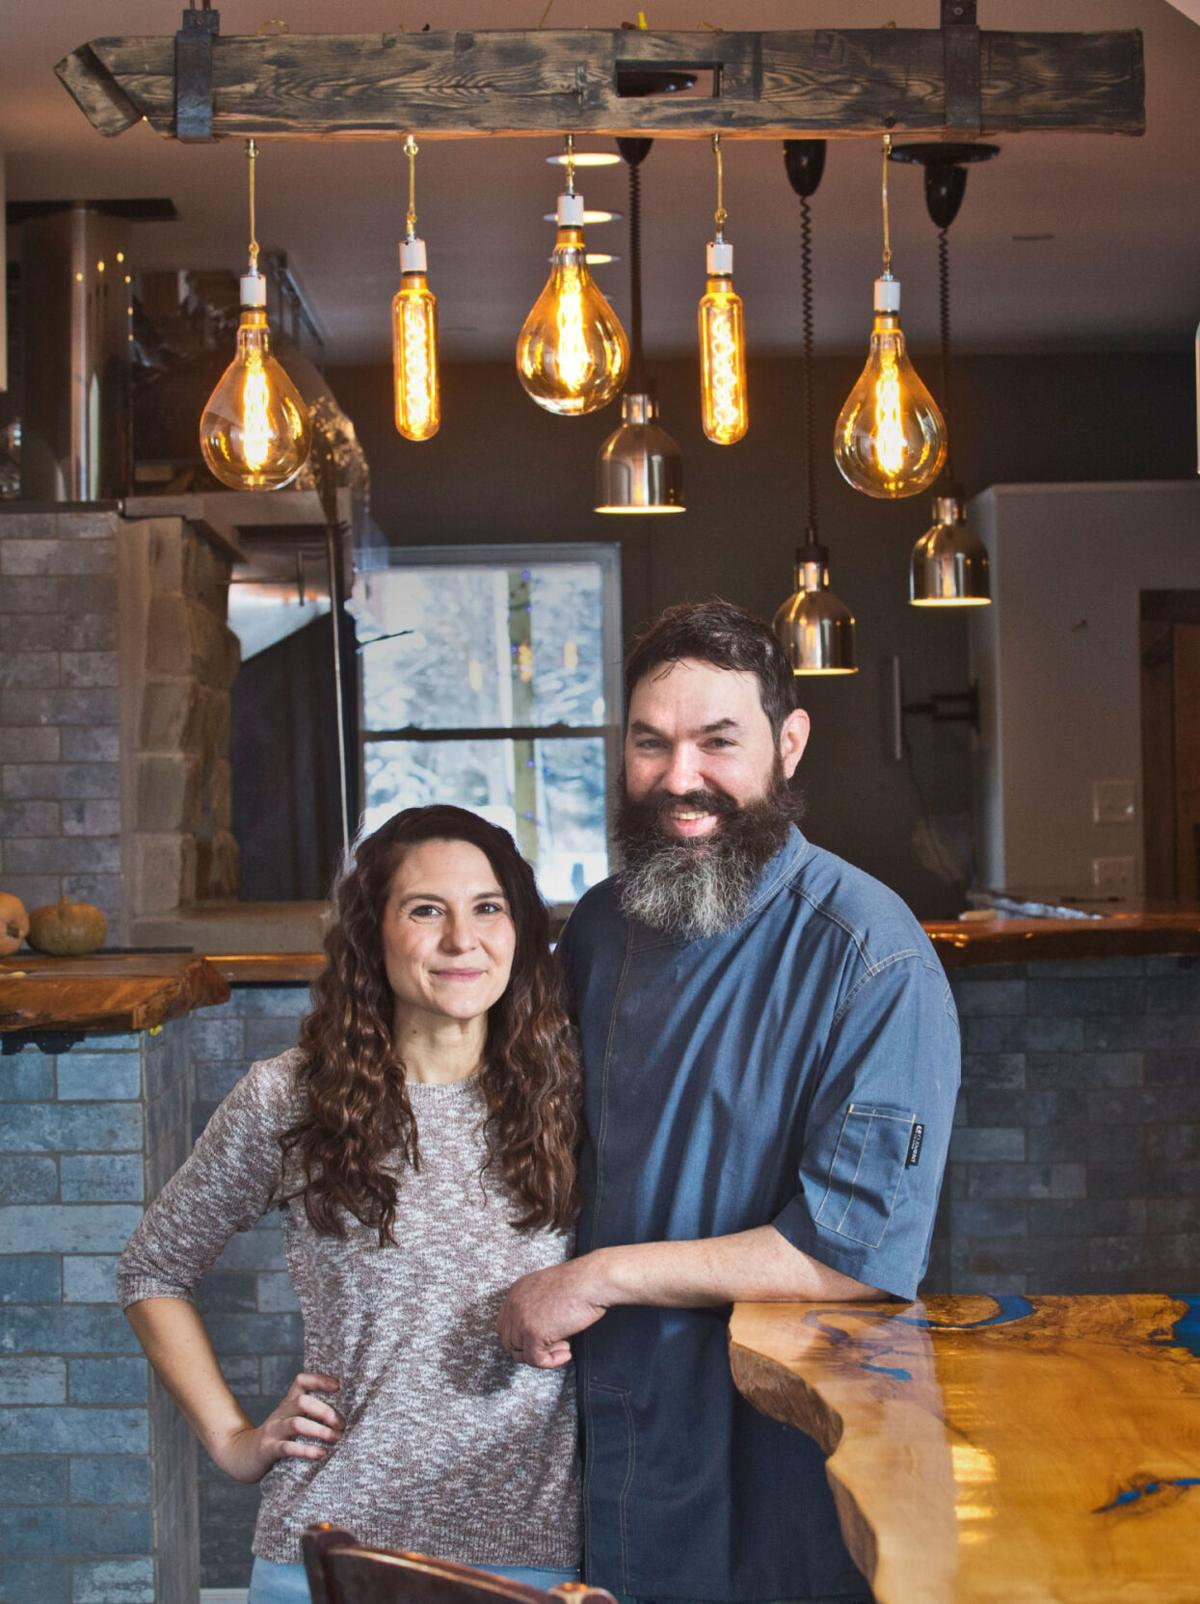 Couple turns home into restaurant